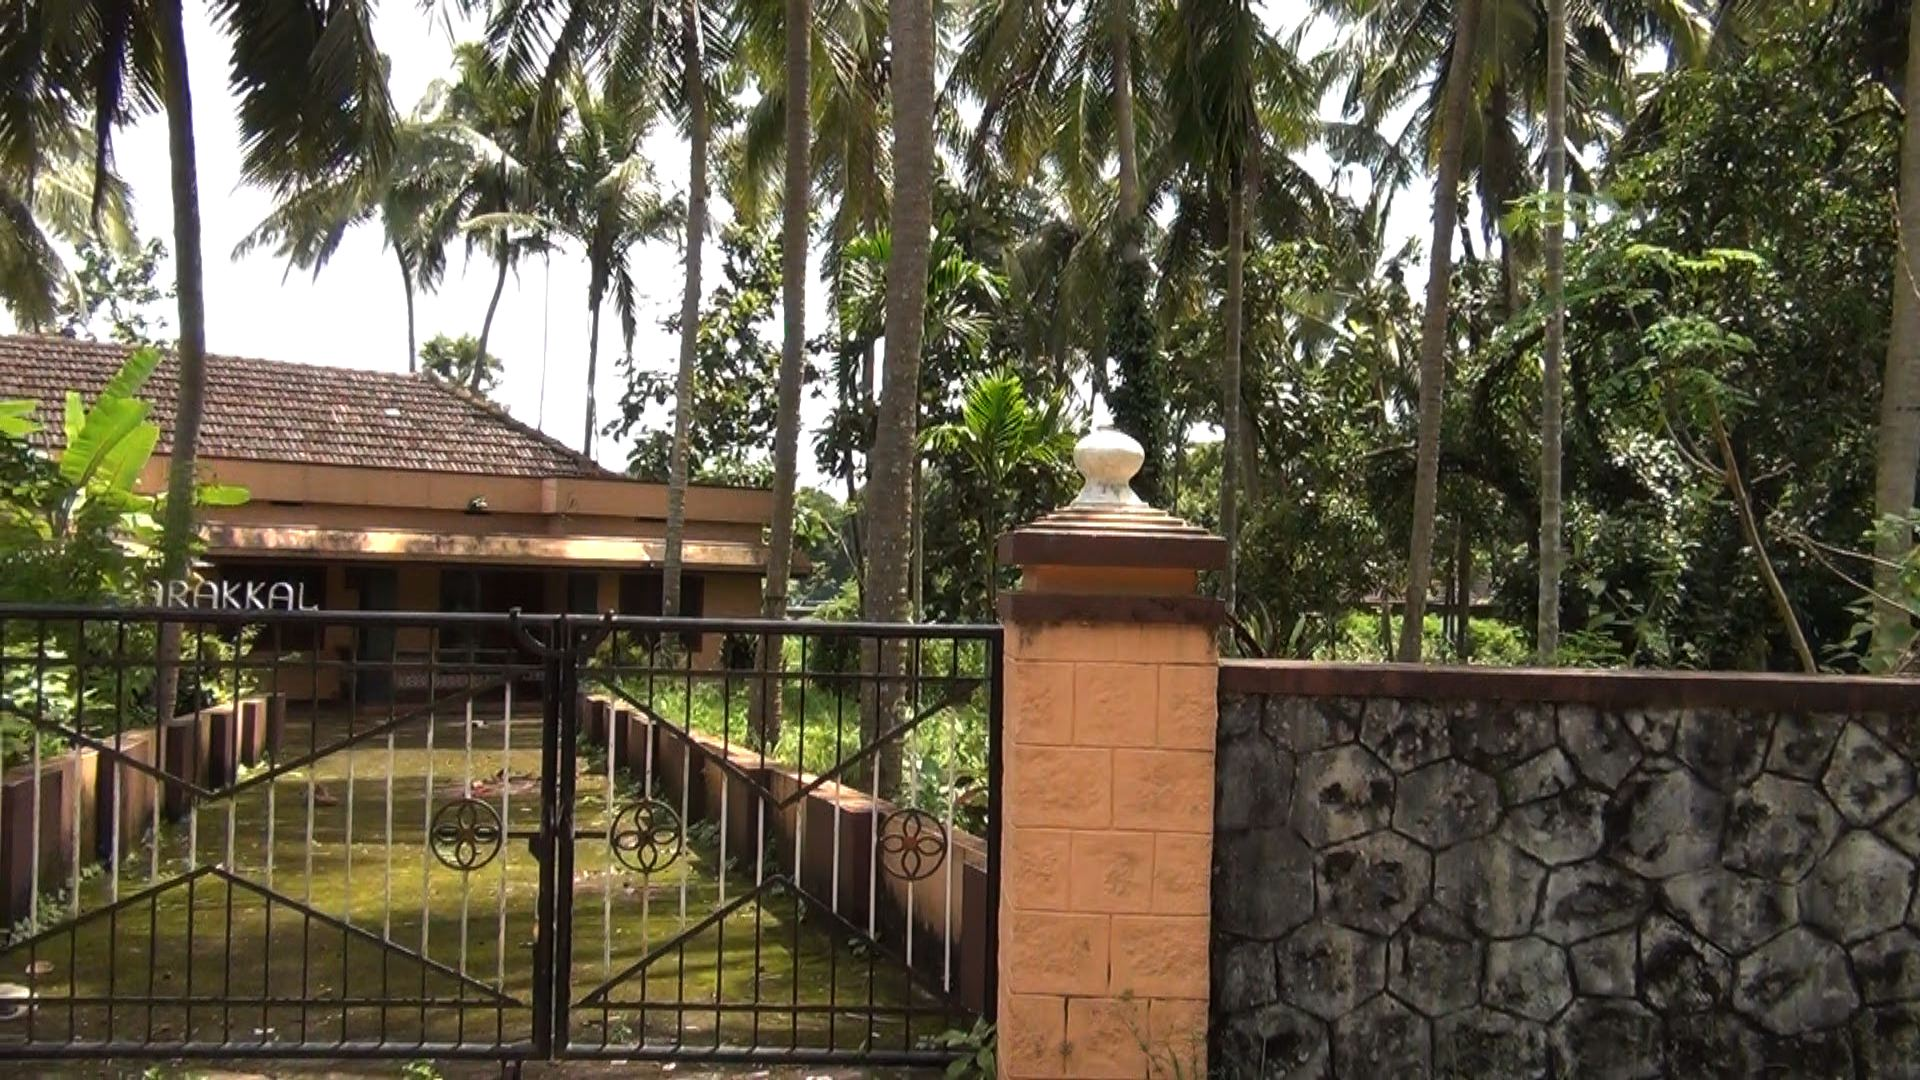 Land in Palakkad